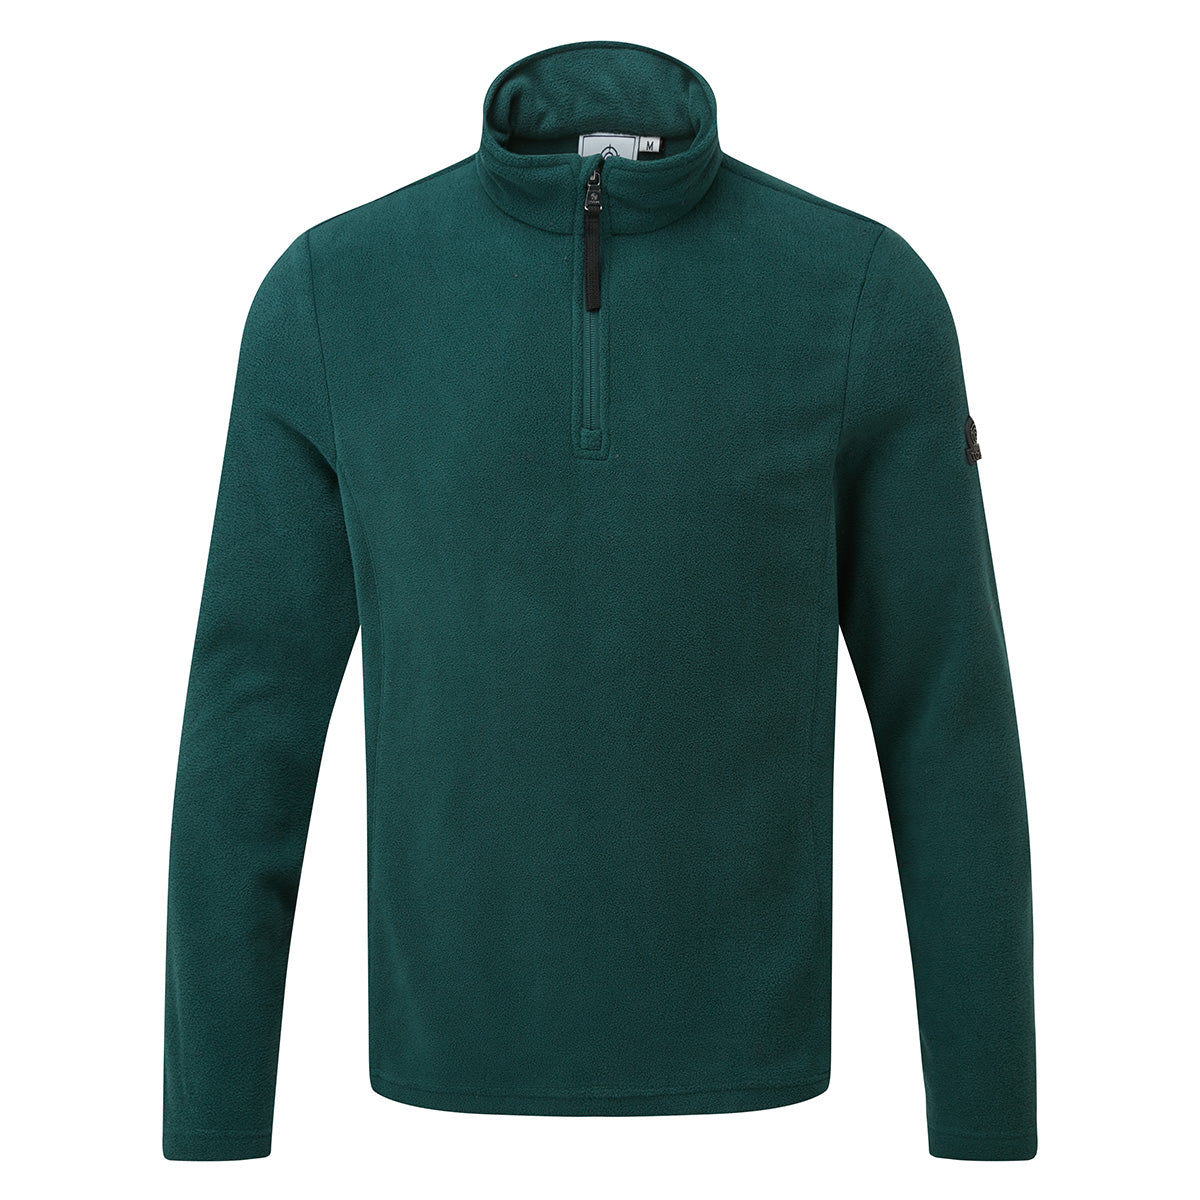 Shire Mens Fleece Zipneck - Forest image 4